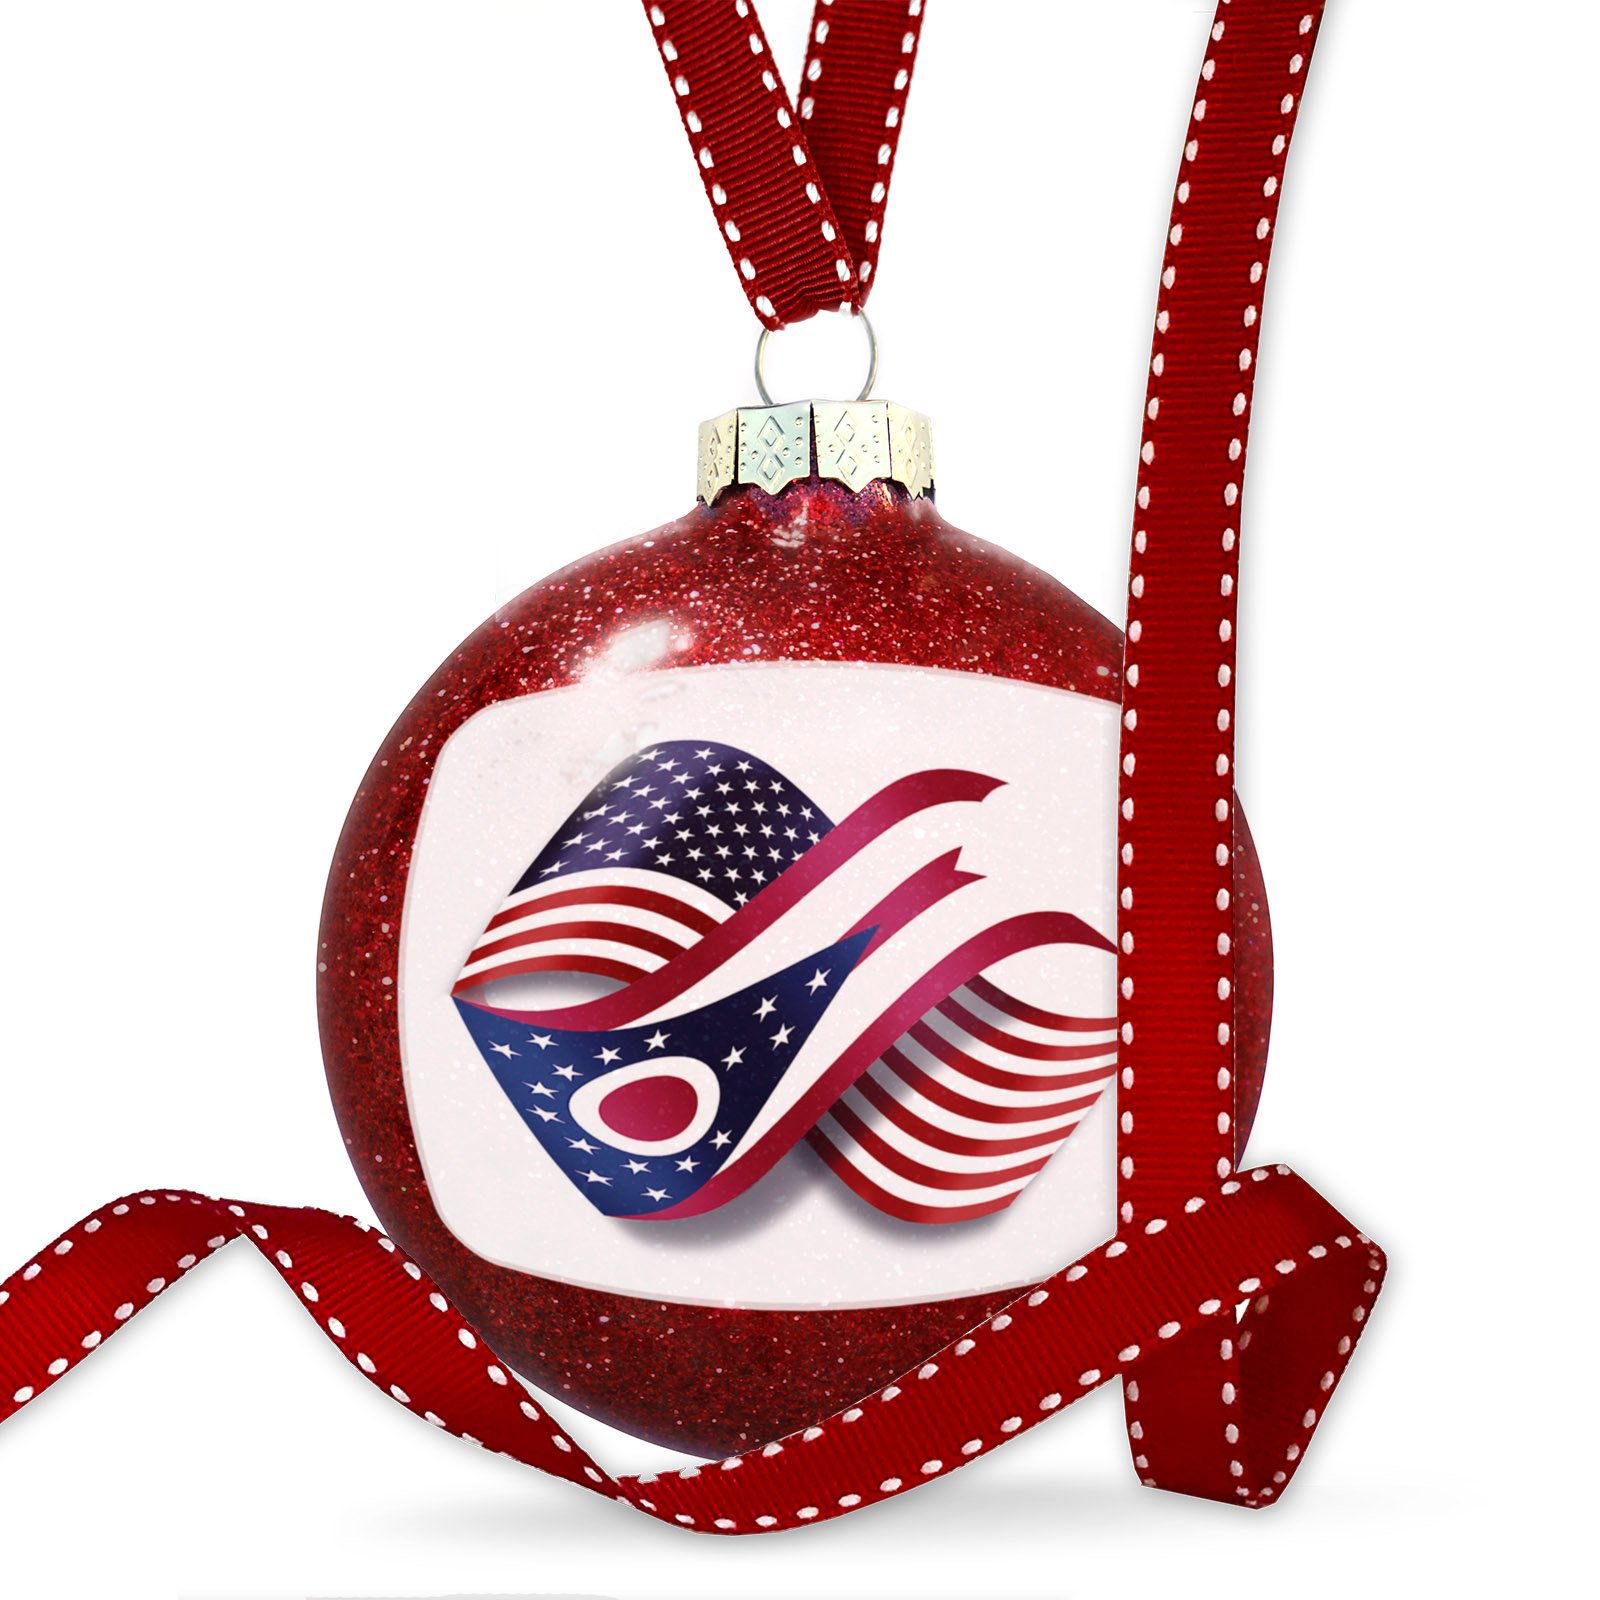 Christmas Decoration Infinity Flags USA and Ohio region America (USA) Ornament